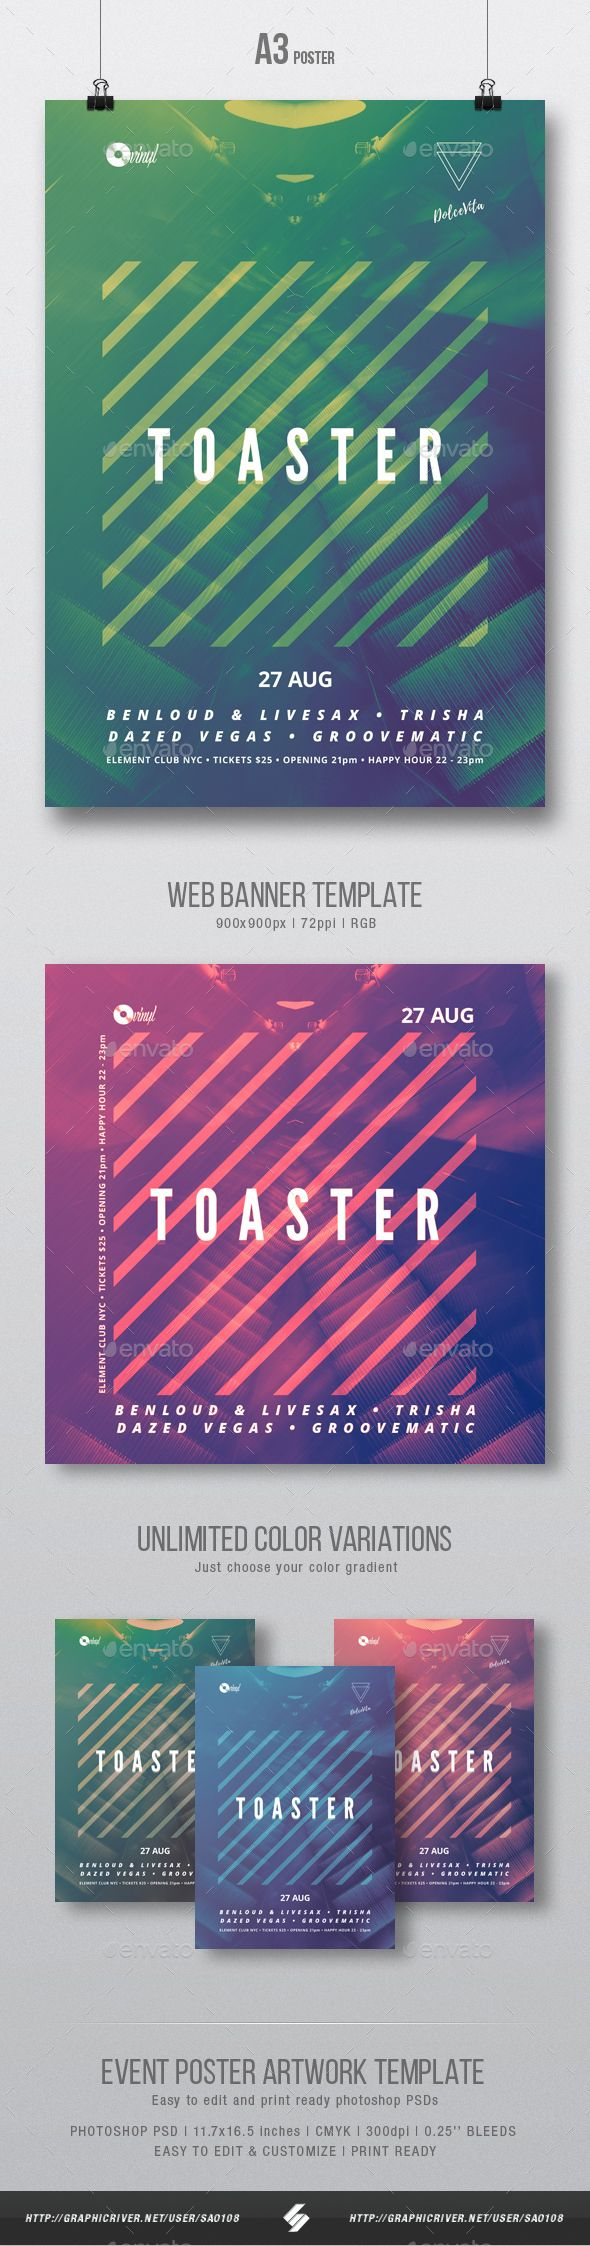 Club dance, tech-house party flyer, poster artwork templateElectronic music party flyer template suited for different genres of electronic music like minimal, techno, techhouse, progressive, dubstep, drum and bass, electronica, trance, electro, deep house, cl